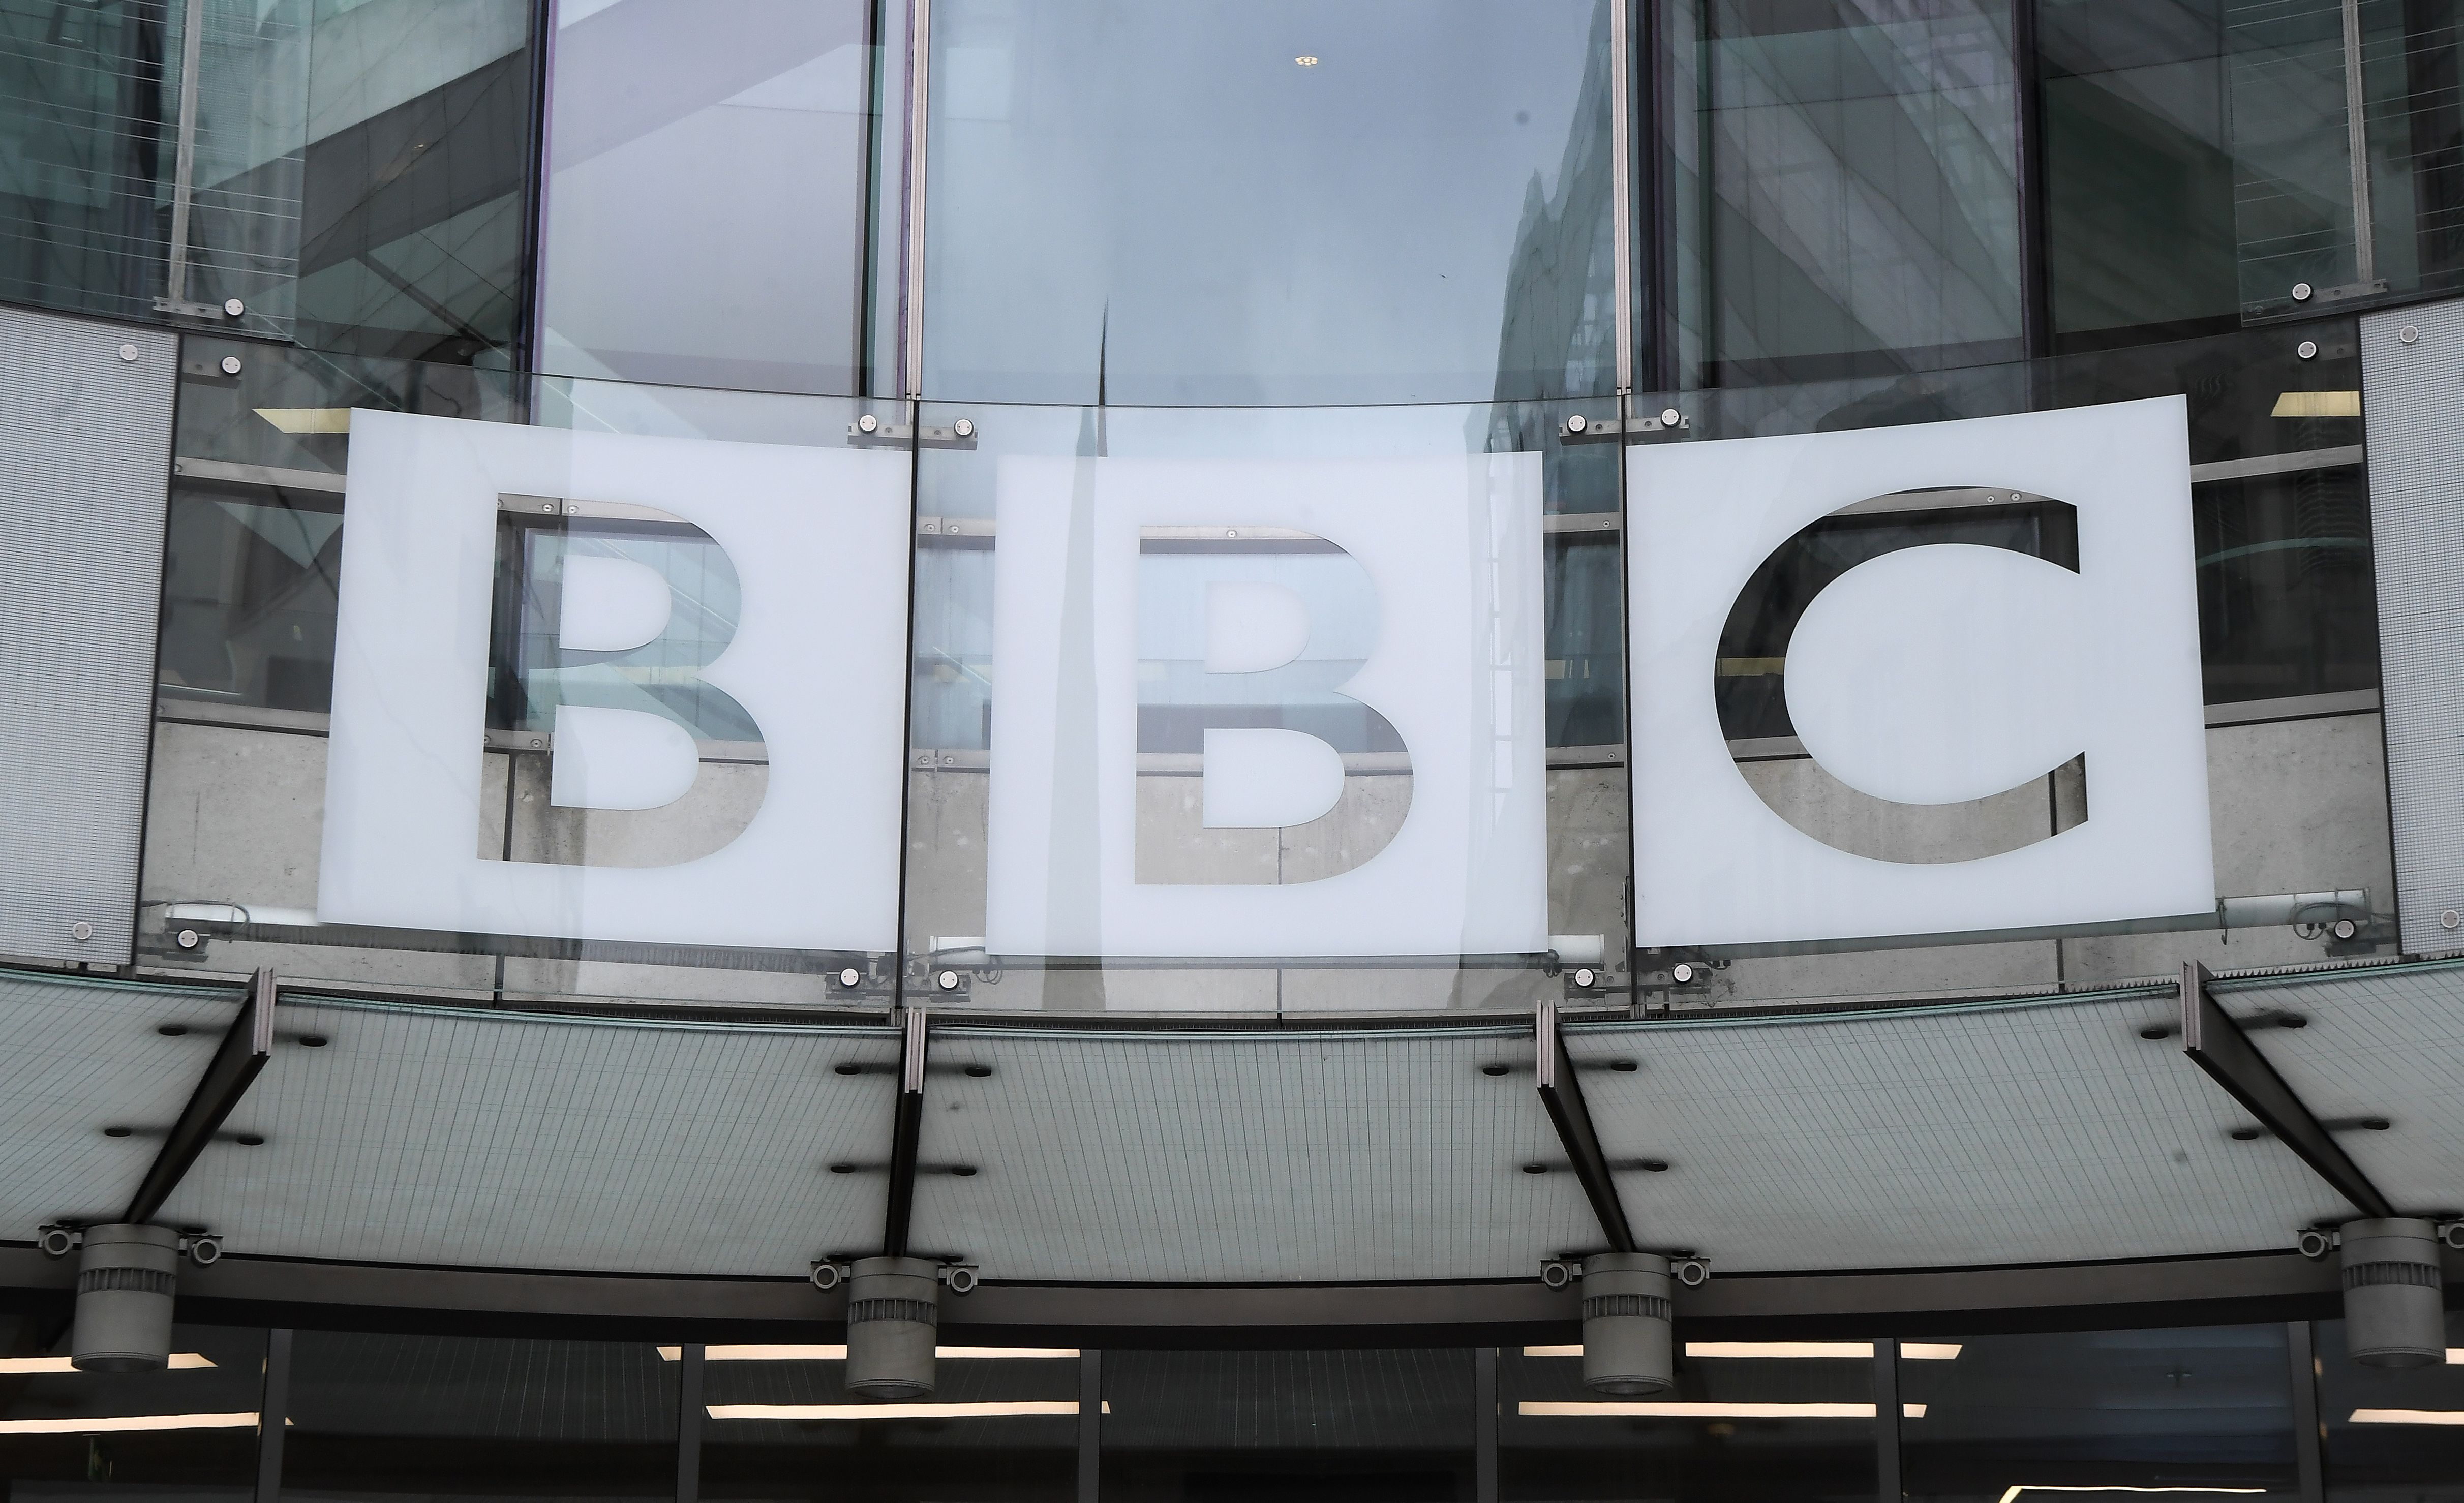 BBC apologizes for use of N-word in news report